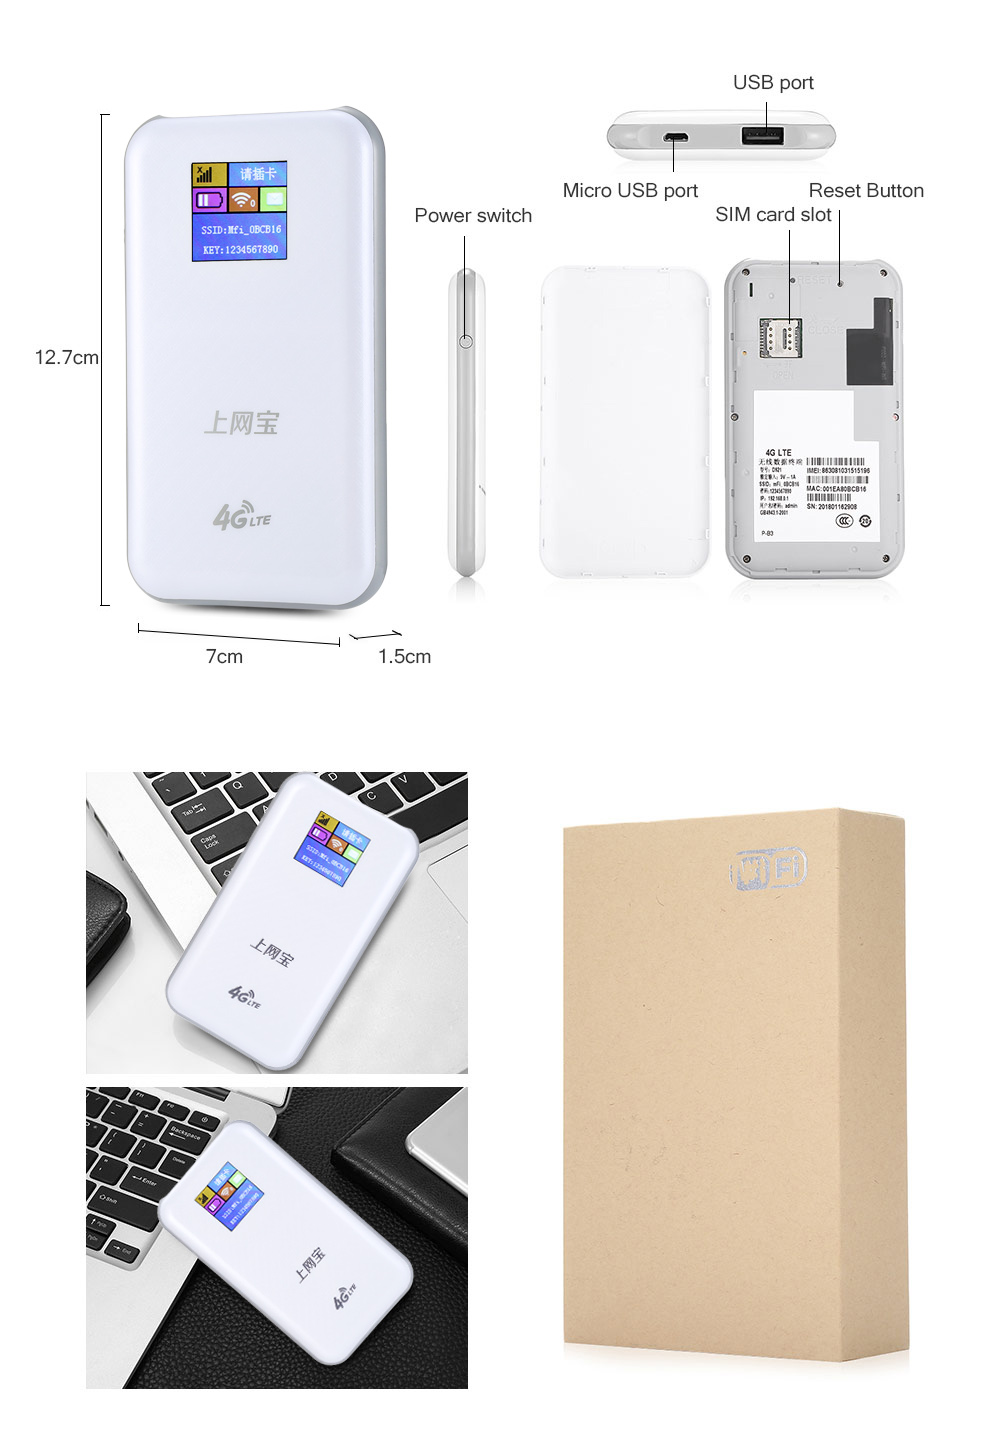 K2 4G WiFi Mobile Router wireless Hotspot Power Bank- Warm White